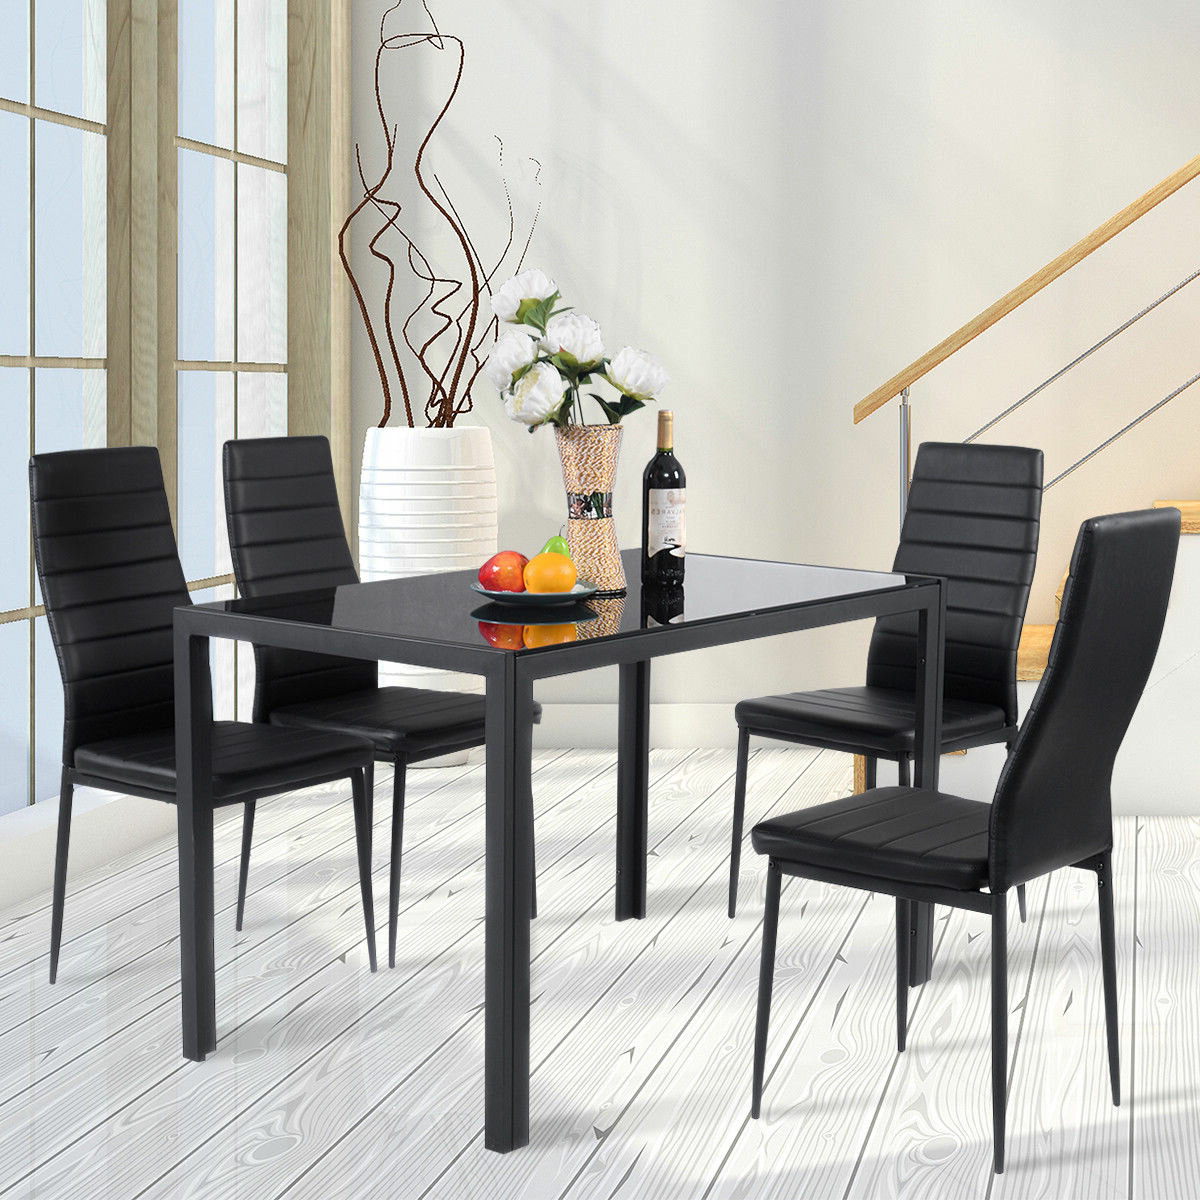 Preferred Travon 5 Piece Dining Sets With Details About Orren Ellis Edgeworth 5 Piece Dining Set (View 10 of 20)